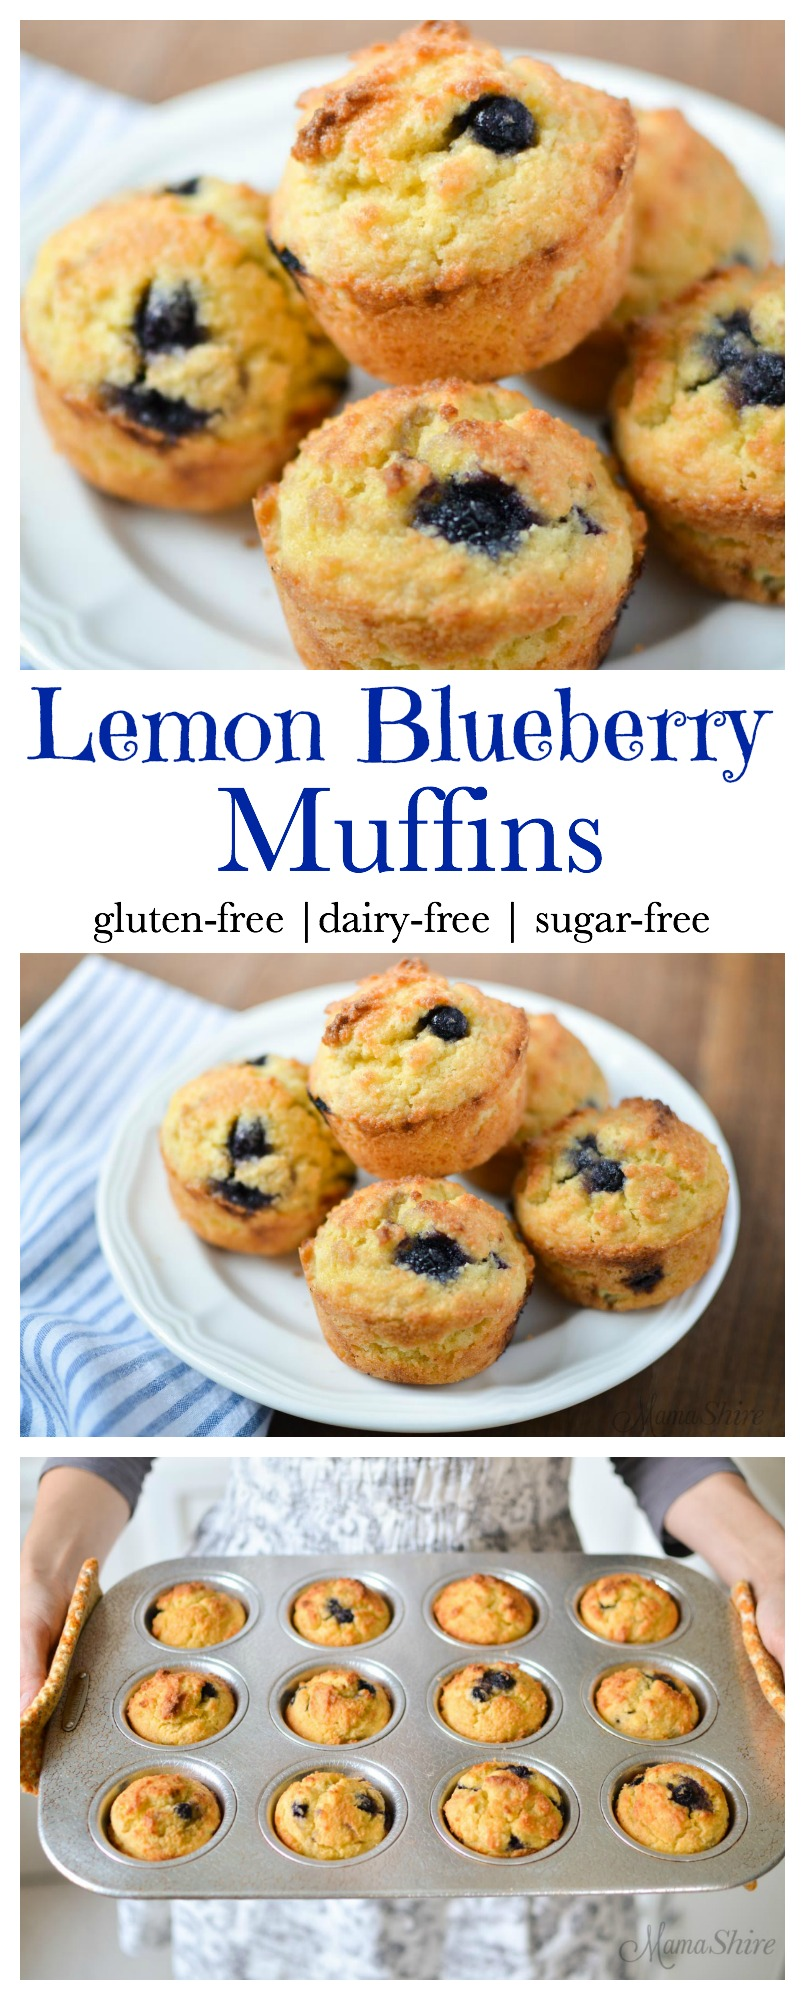 Delicious low-carb Lemon Blueberry Muffins! Perfect for breakfast or a snack. Trim Healthy Mama-S, Keto. #dairyfree #glutenfree #keto #trimhealthymama #blueberrymuffins #breakfast #treat #snack #grainfree #lowcarb #healthy #celiac #blueberries